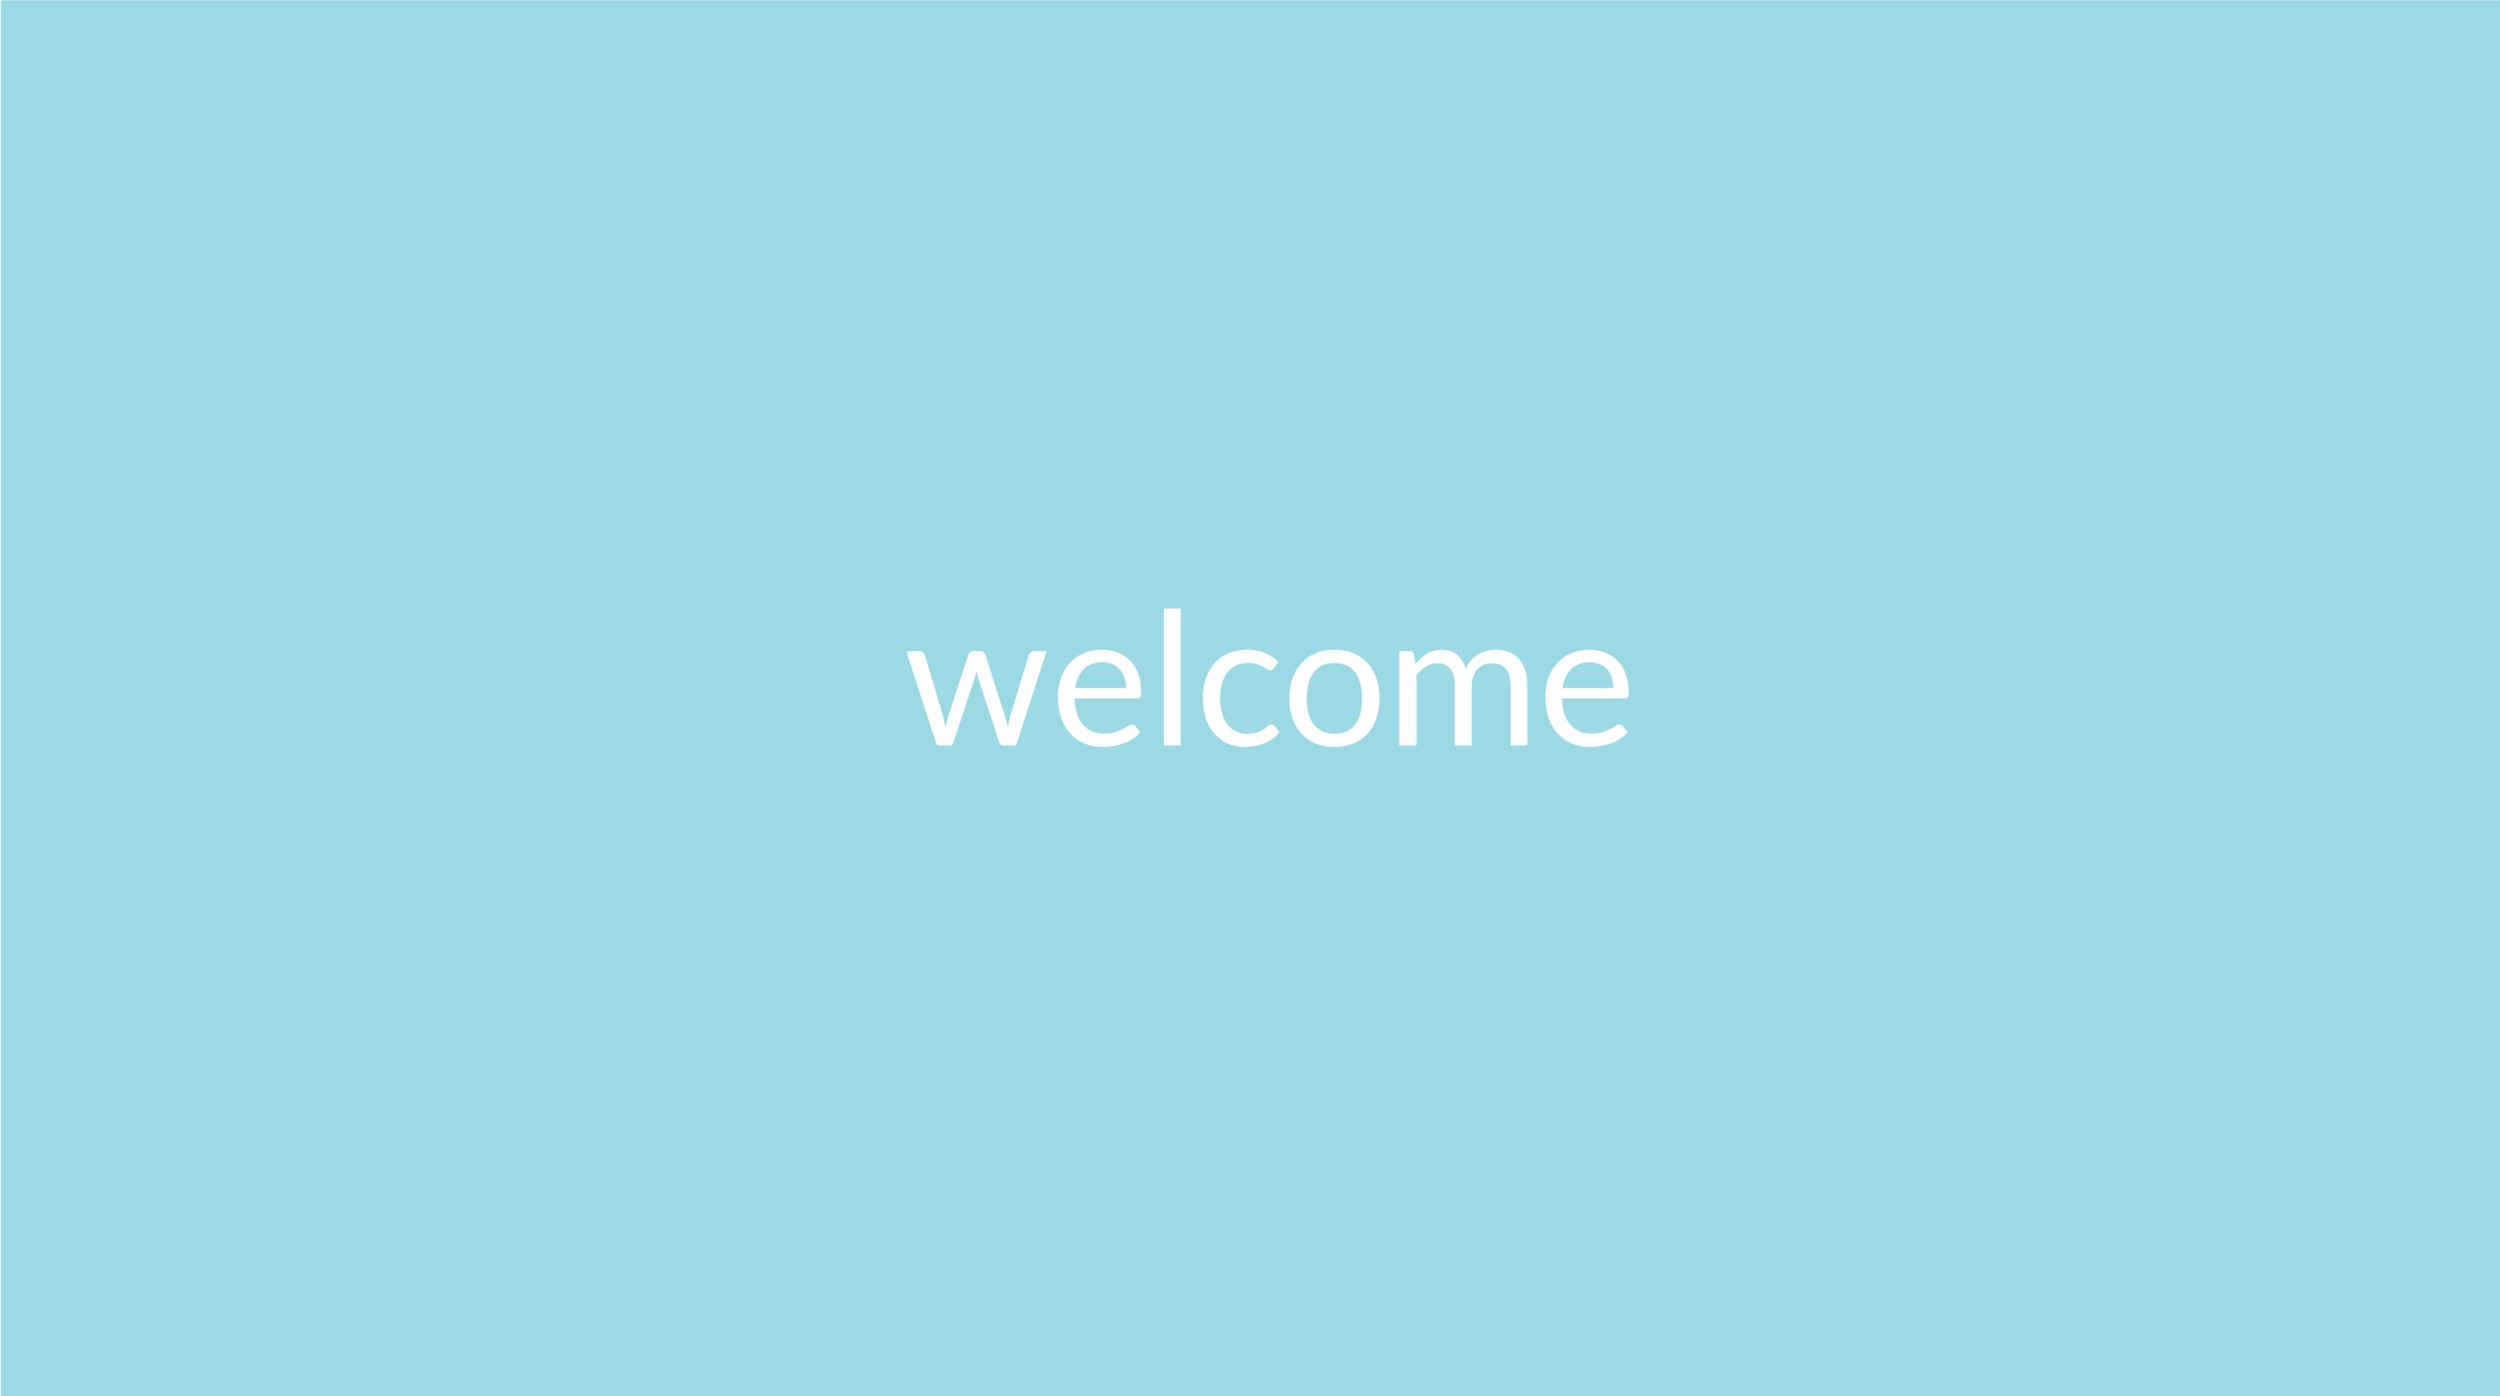 1_WelcomeBanner_ENG.png